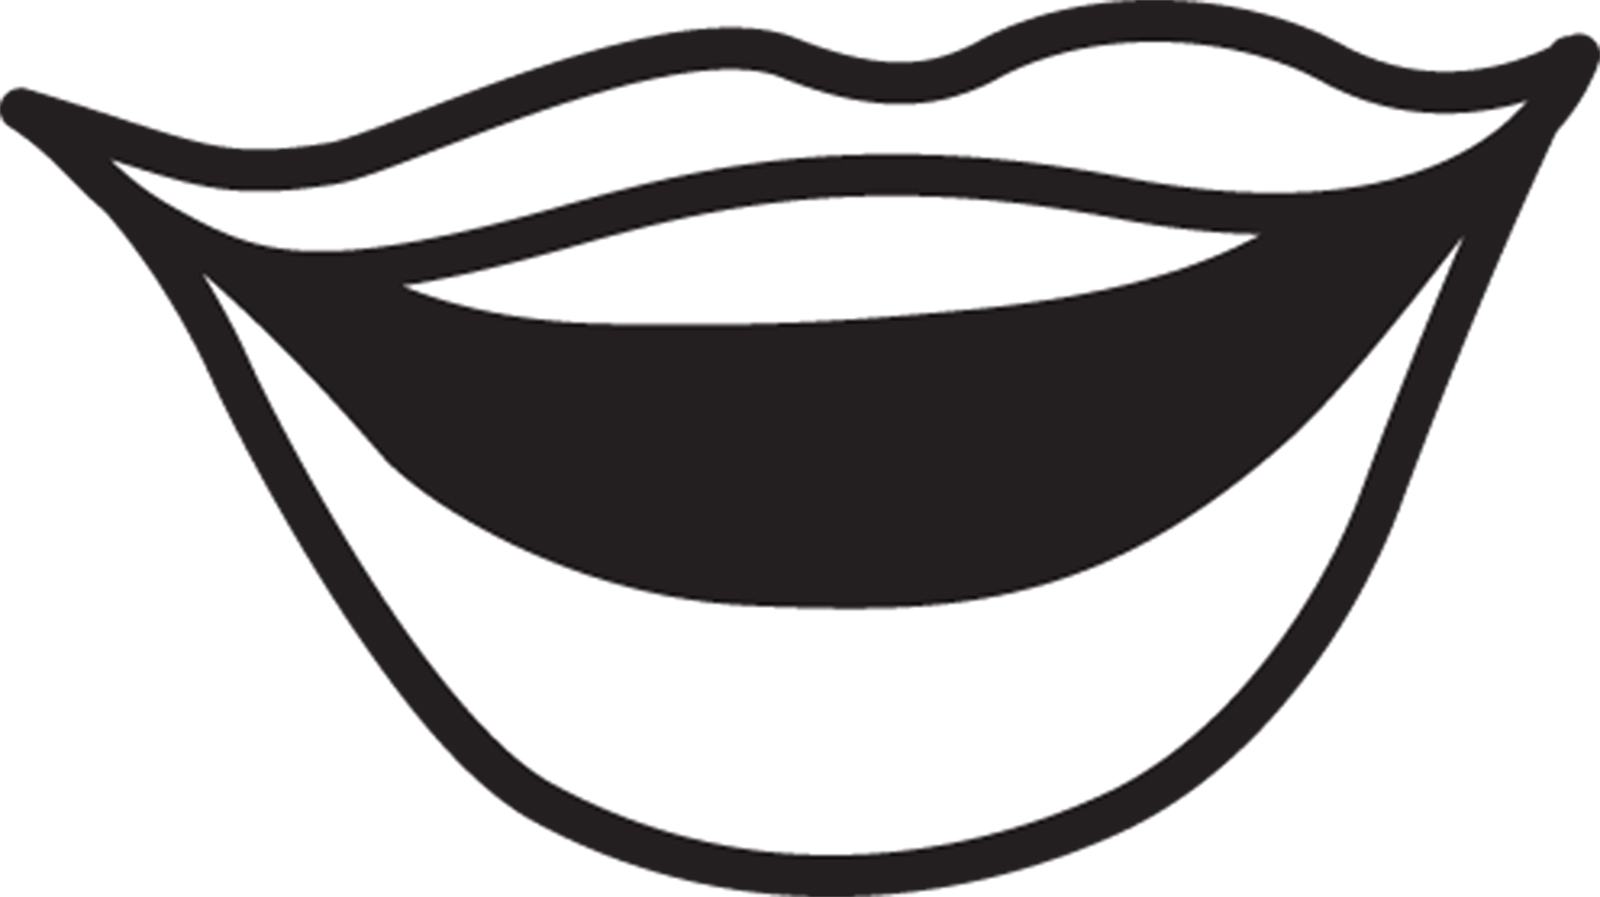 1600x897 Lips Black And White Lips Clipart Black And White Free Images